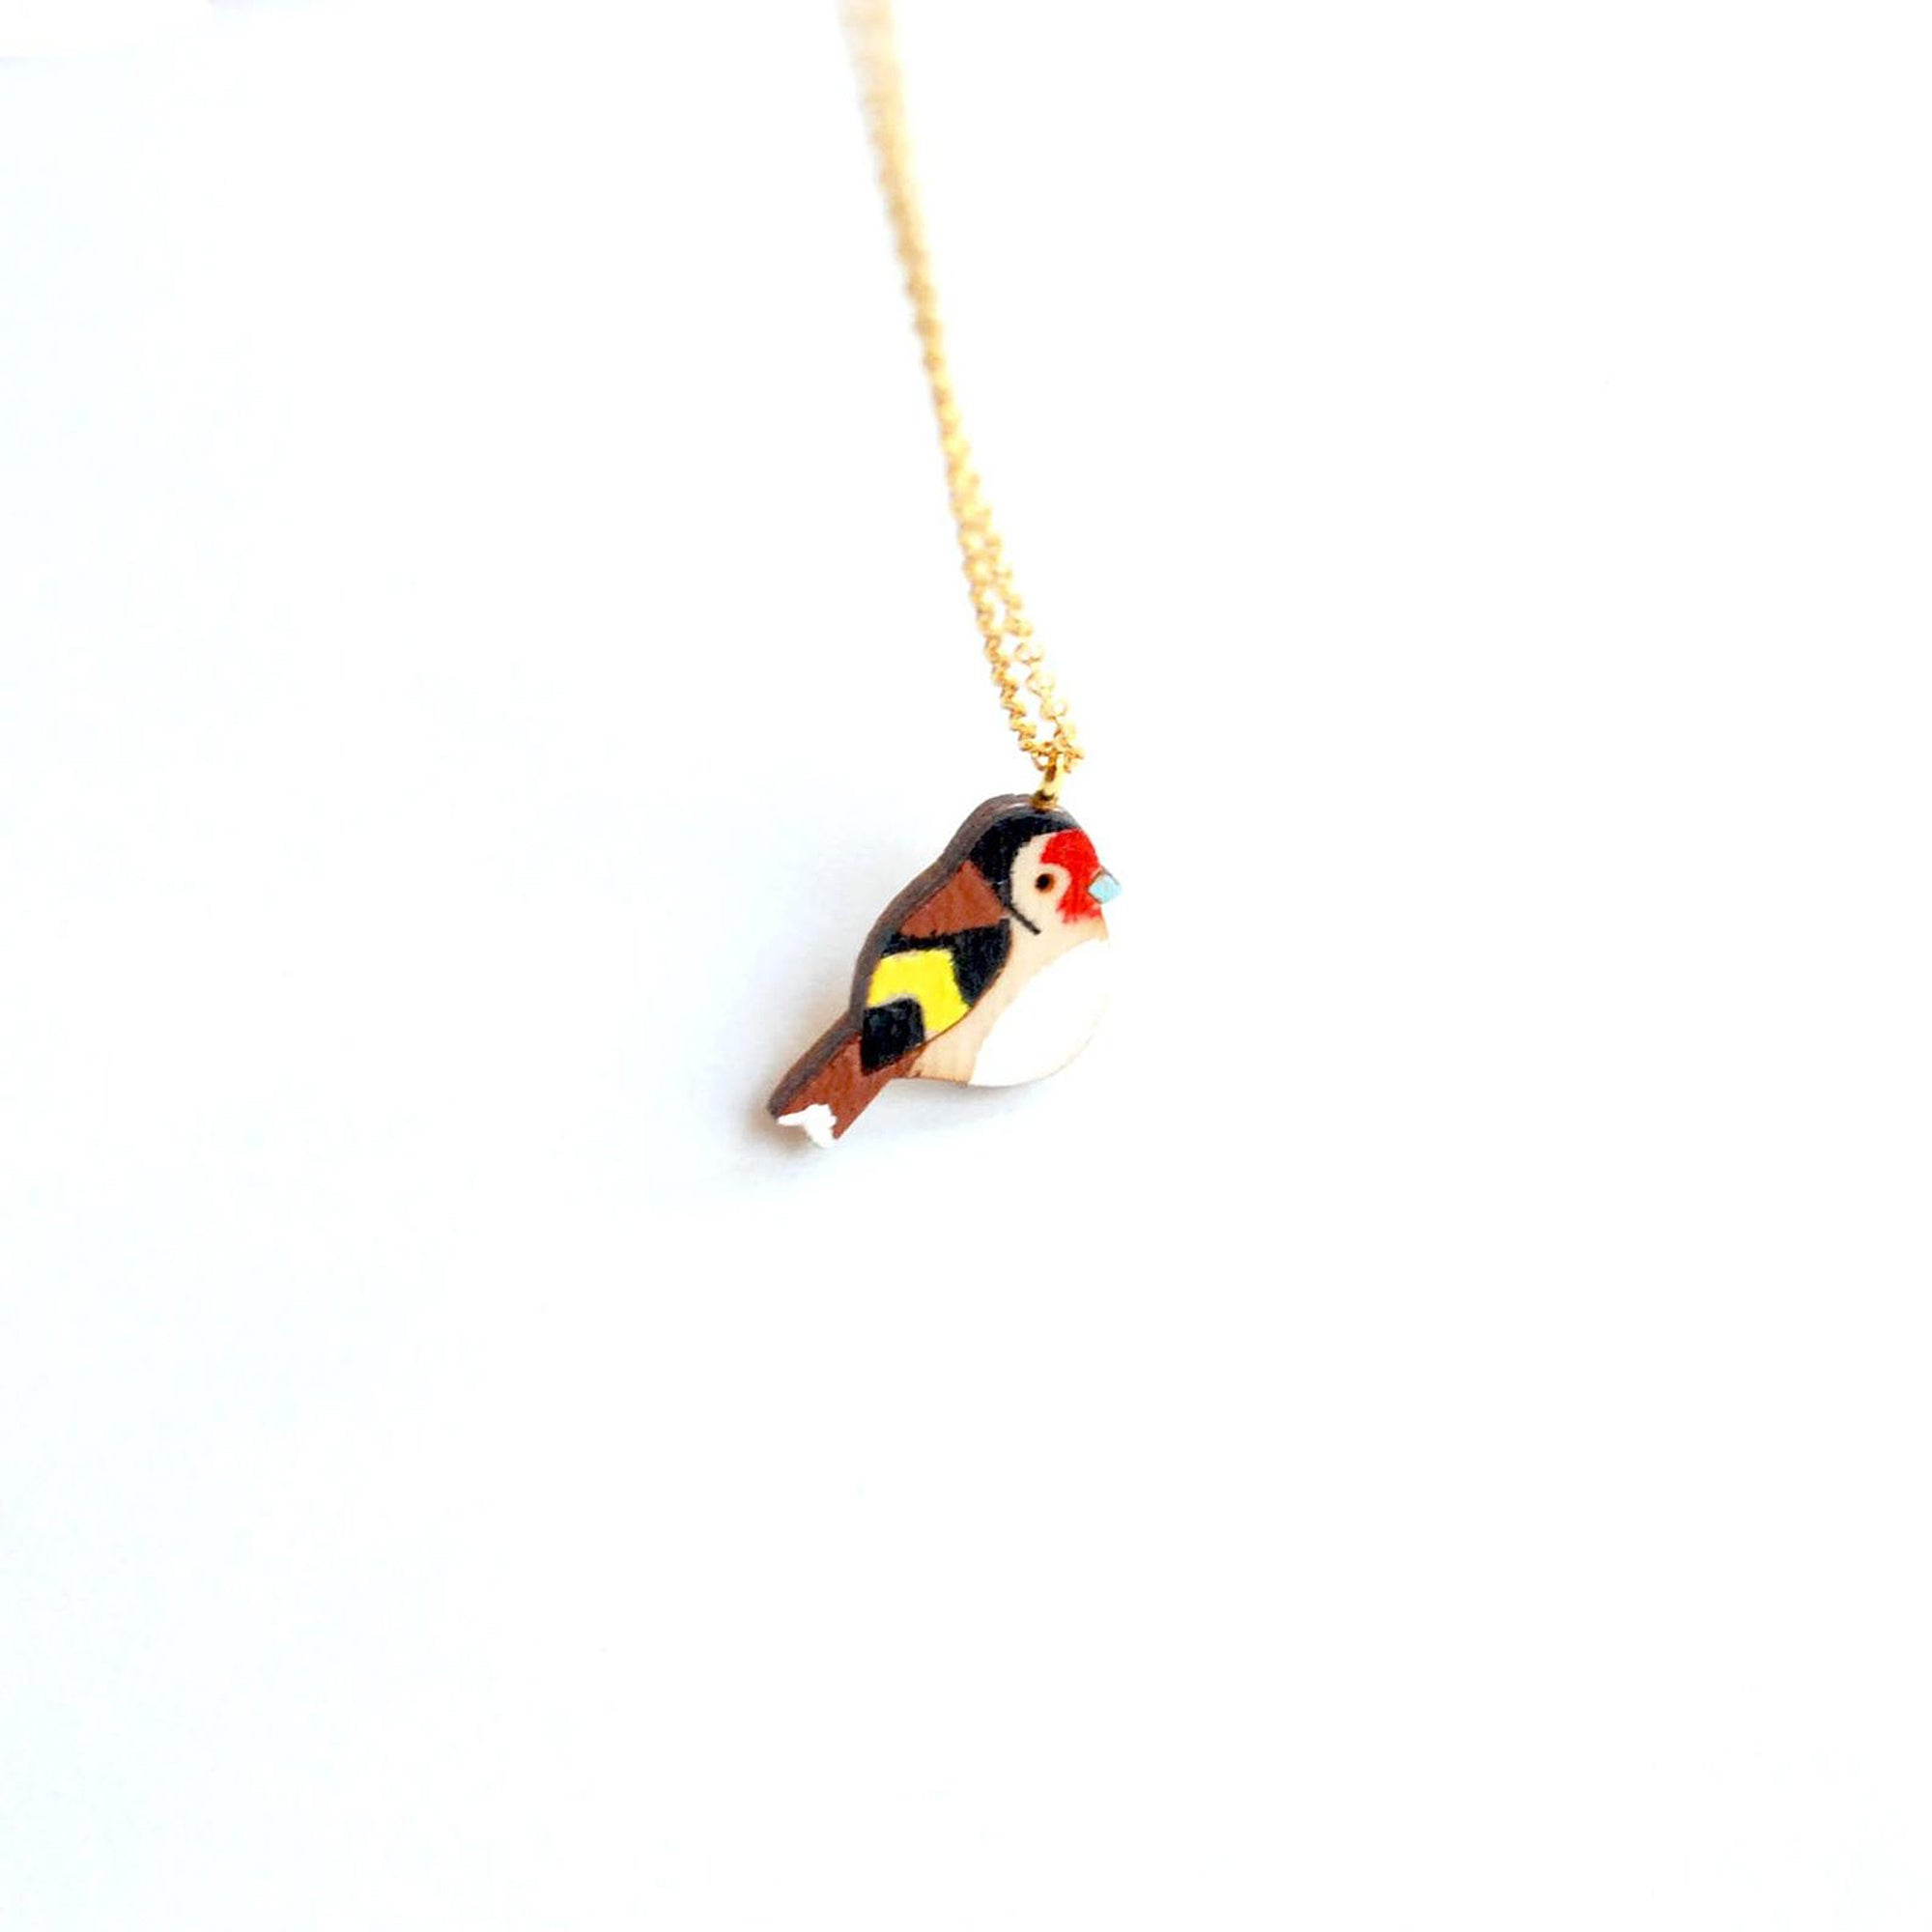 Goldfinch necklace - Inspired